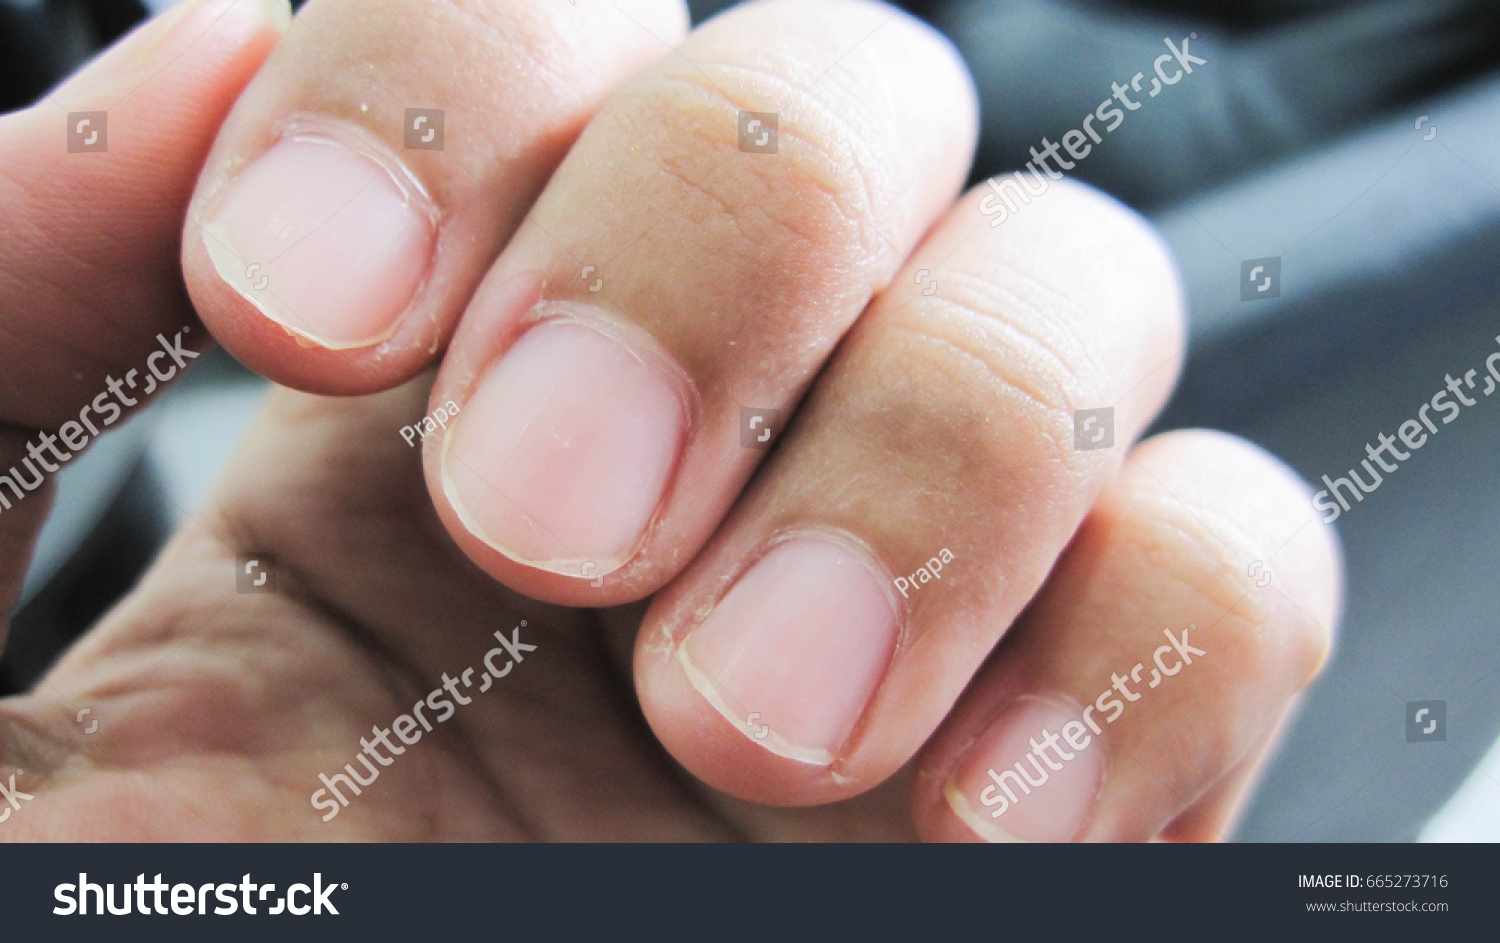 Nails That Do Not Care Delicate Stock Photo (Royalty Free) 665273716 ...